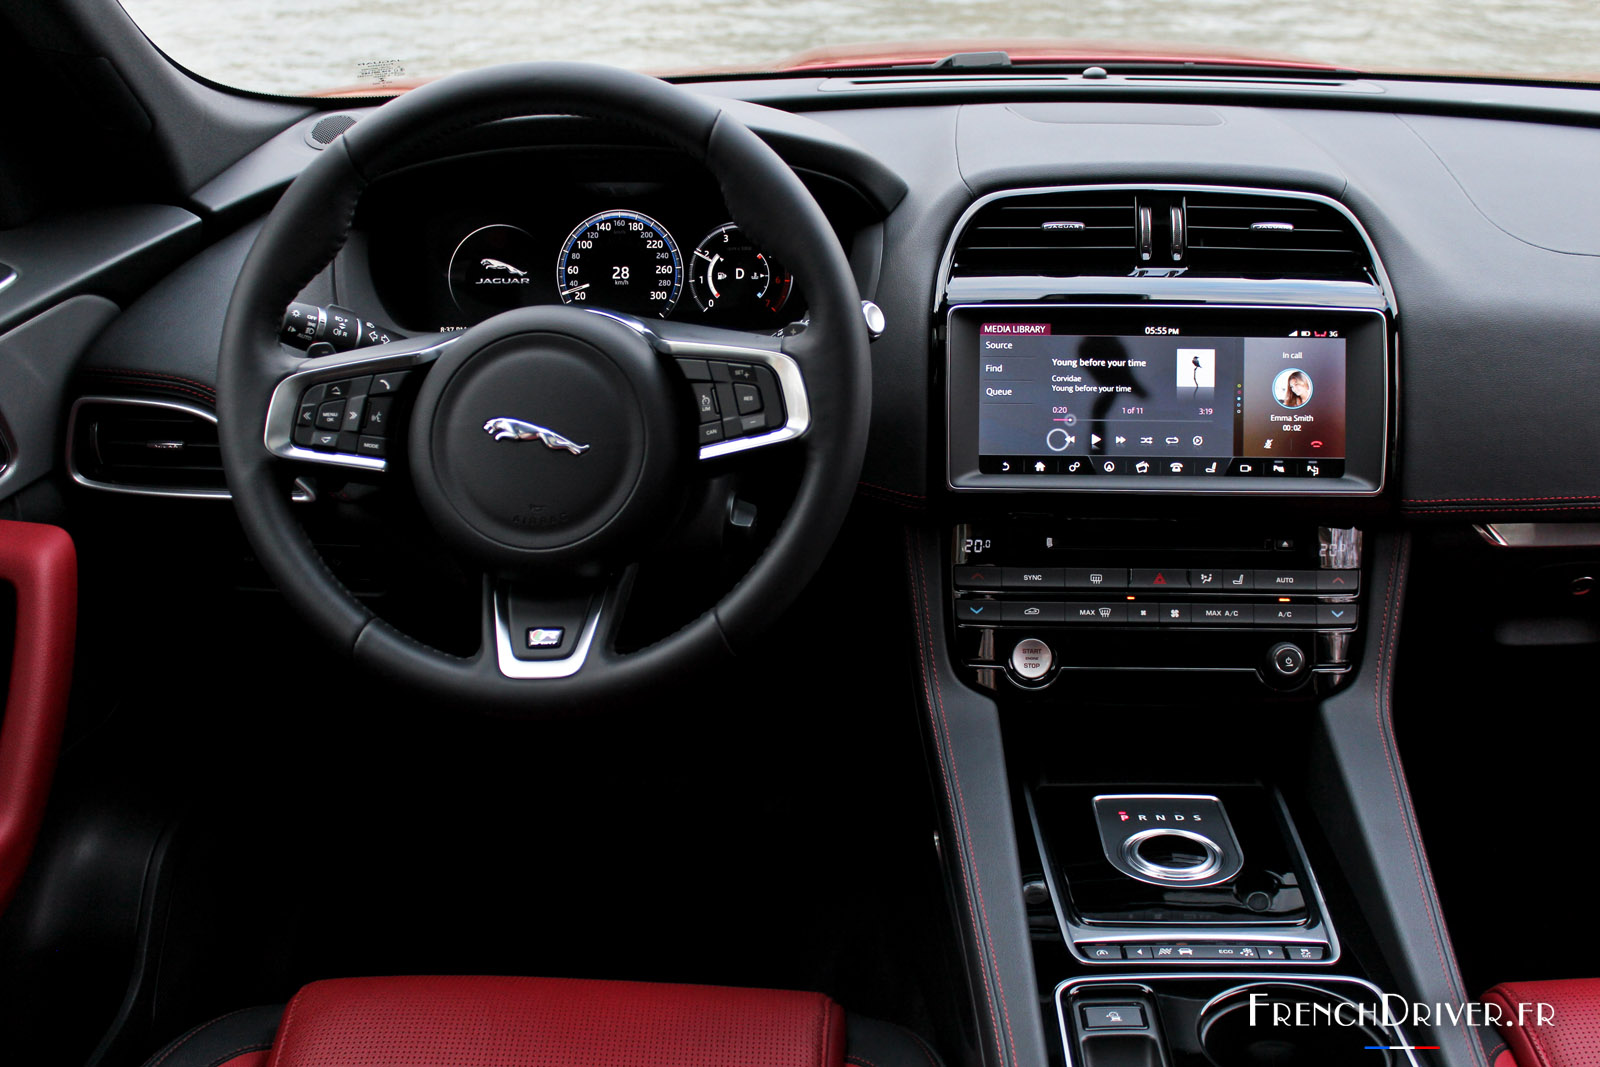 photos la jaguar f pace choisit french driver pour ses premiers pas en france french driver. Black Bedroom Furniture Sets. Home Design Ideas